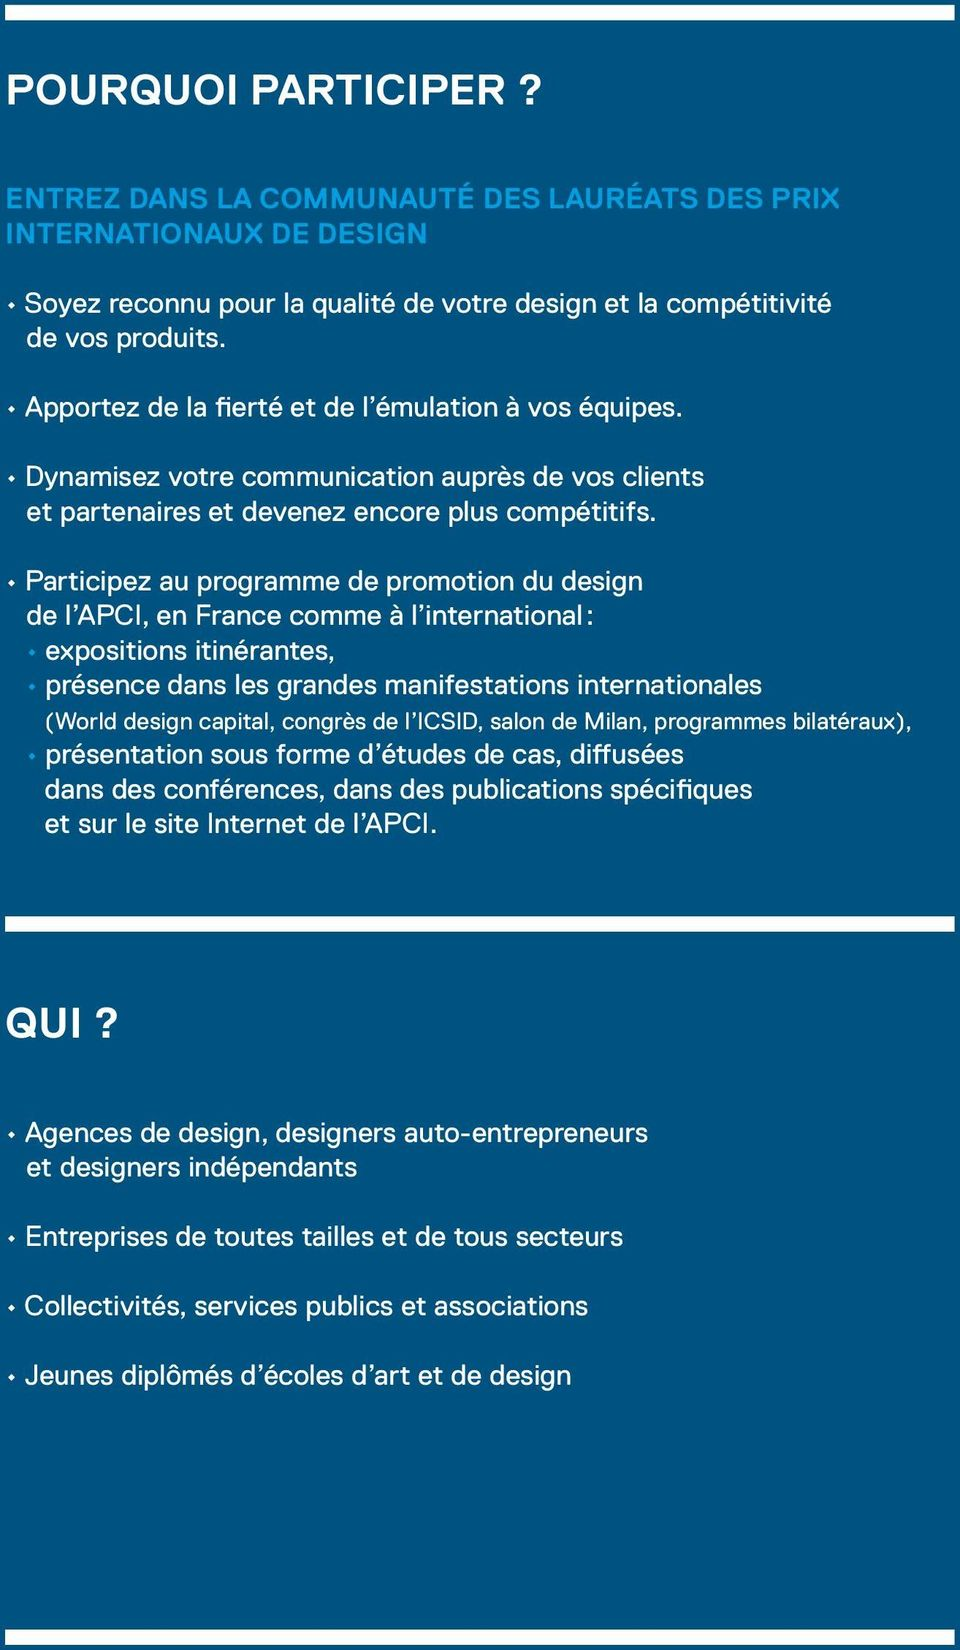 Participez au programme de promotion du design de l APCI, en France comme à l international : expositions itinérantes, présence dans les grandes manifestations internationales (World design capital,